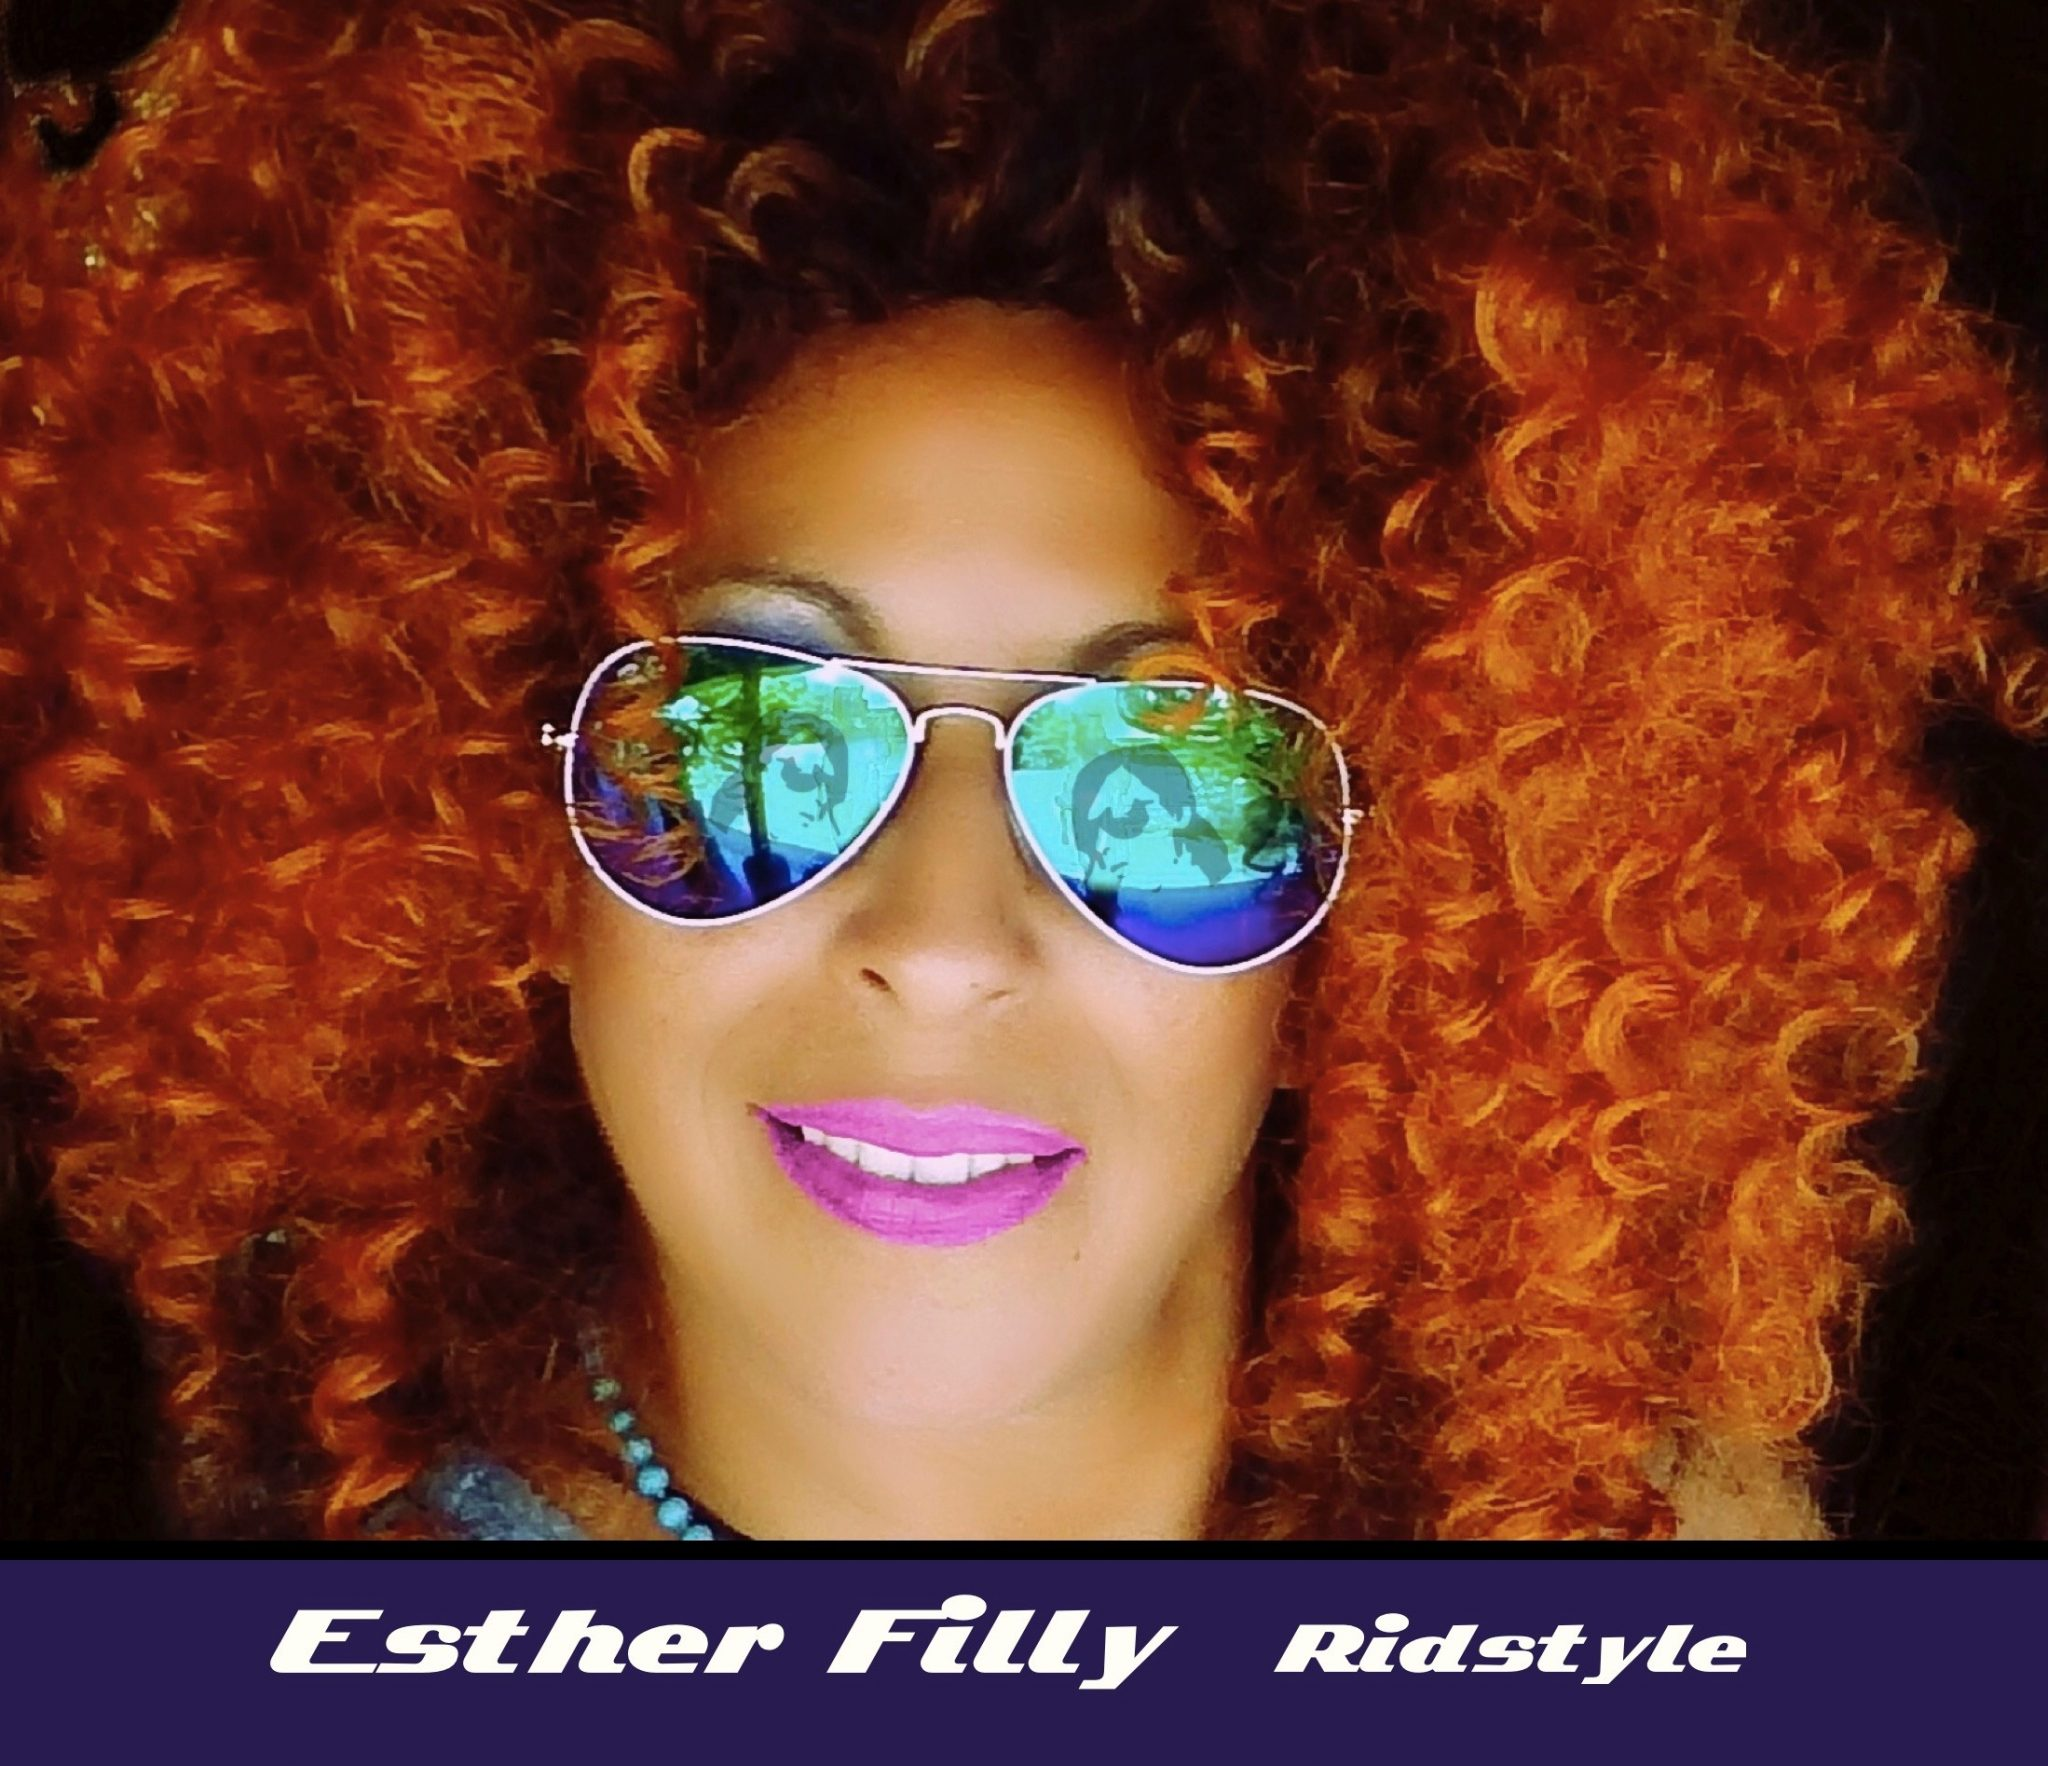 Esther Filly